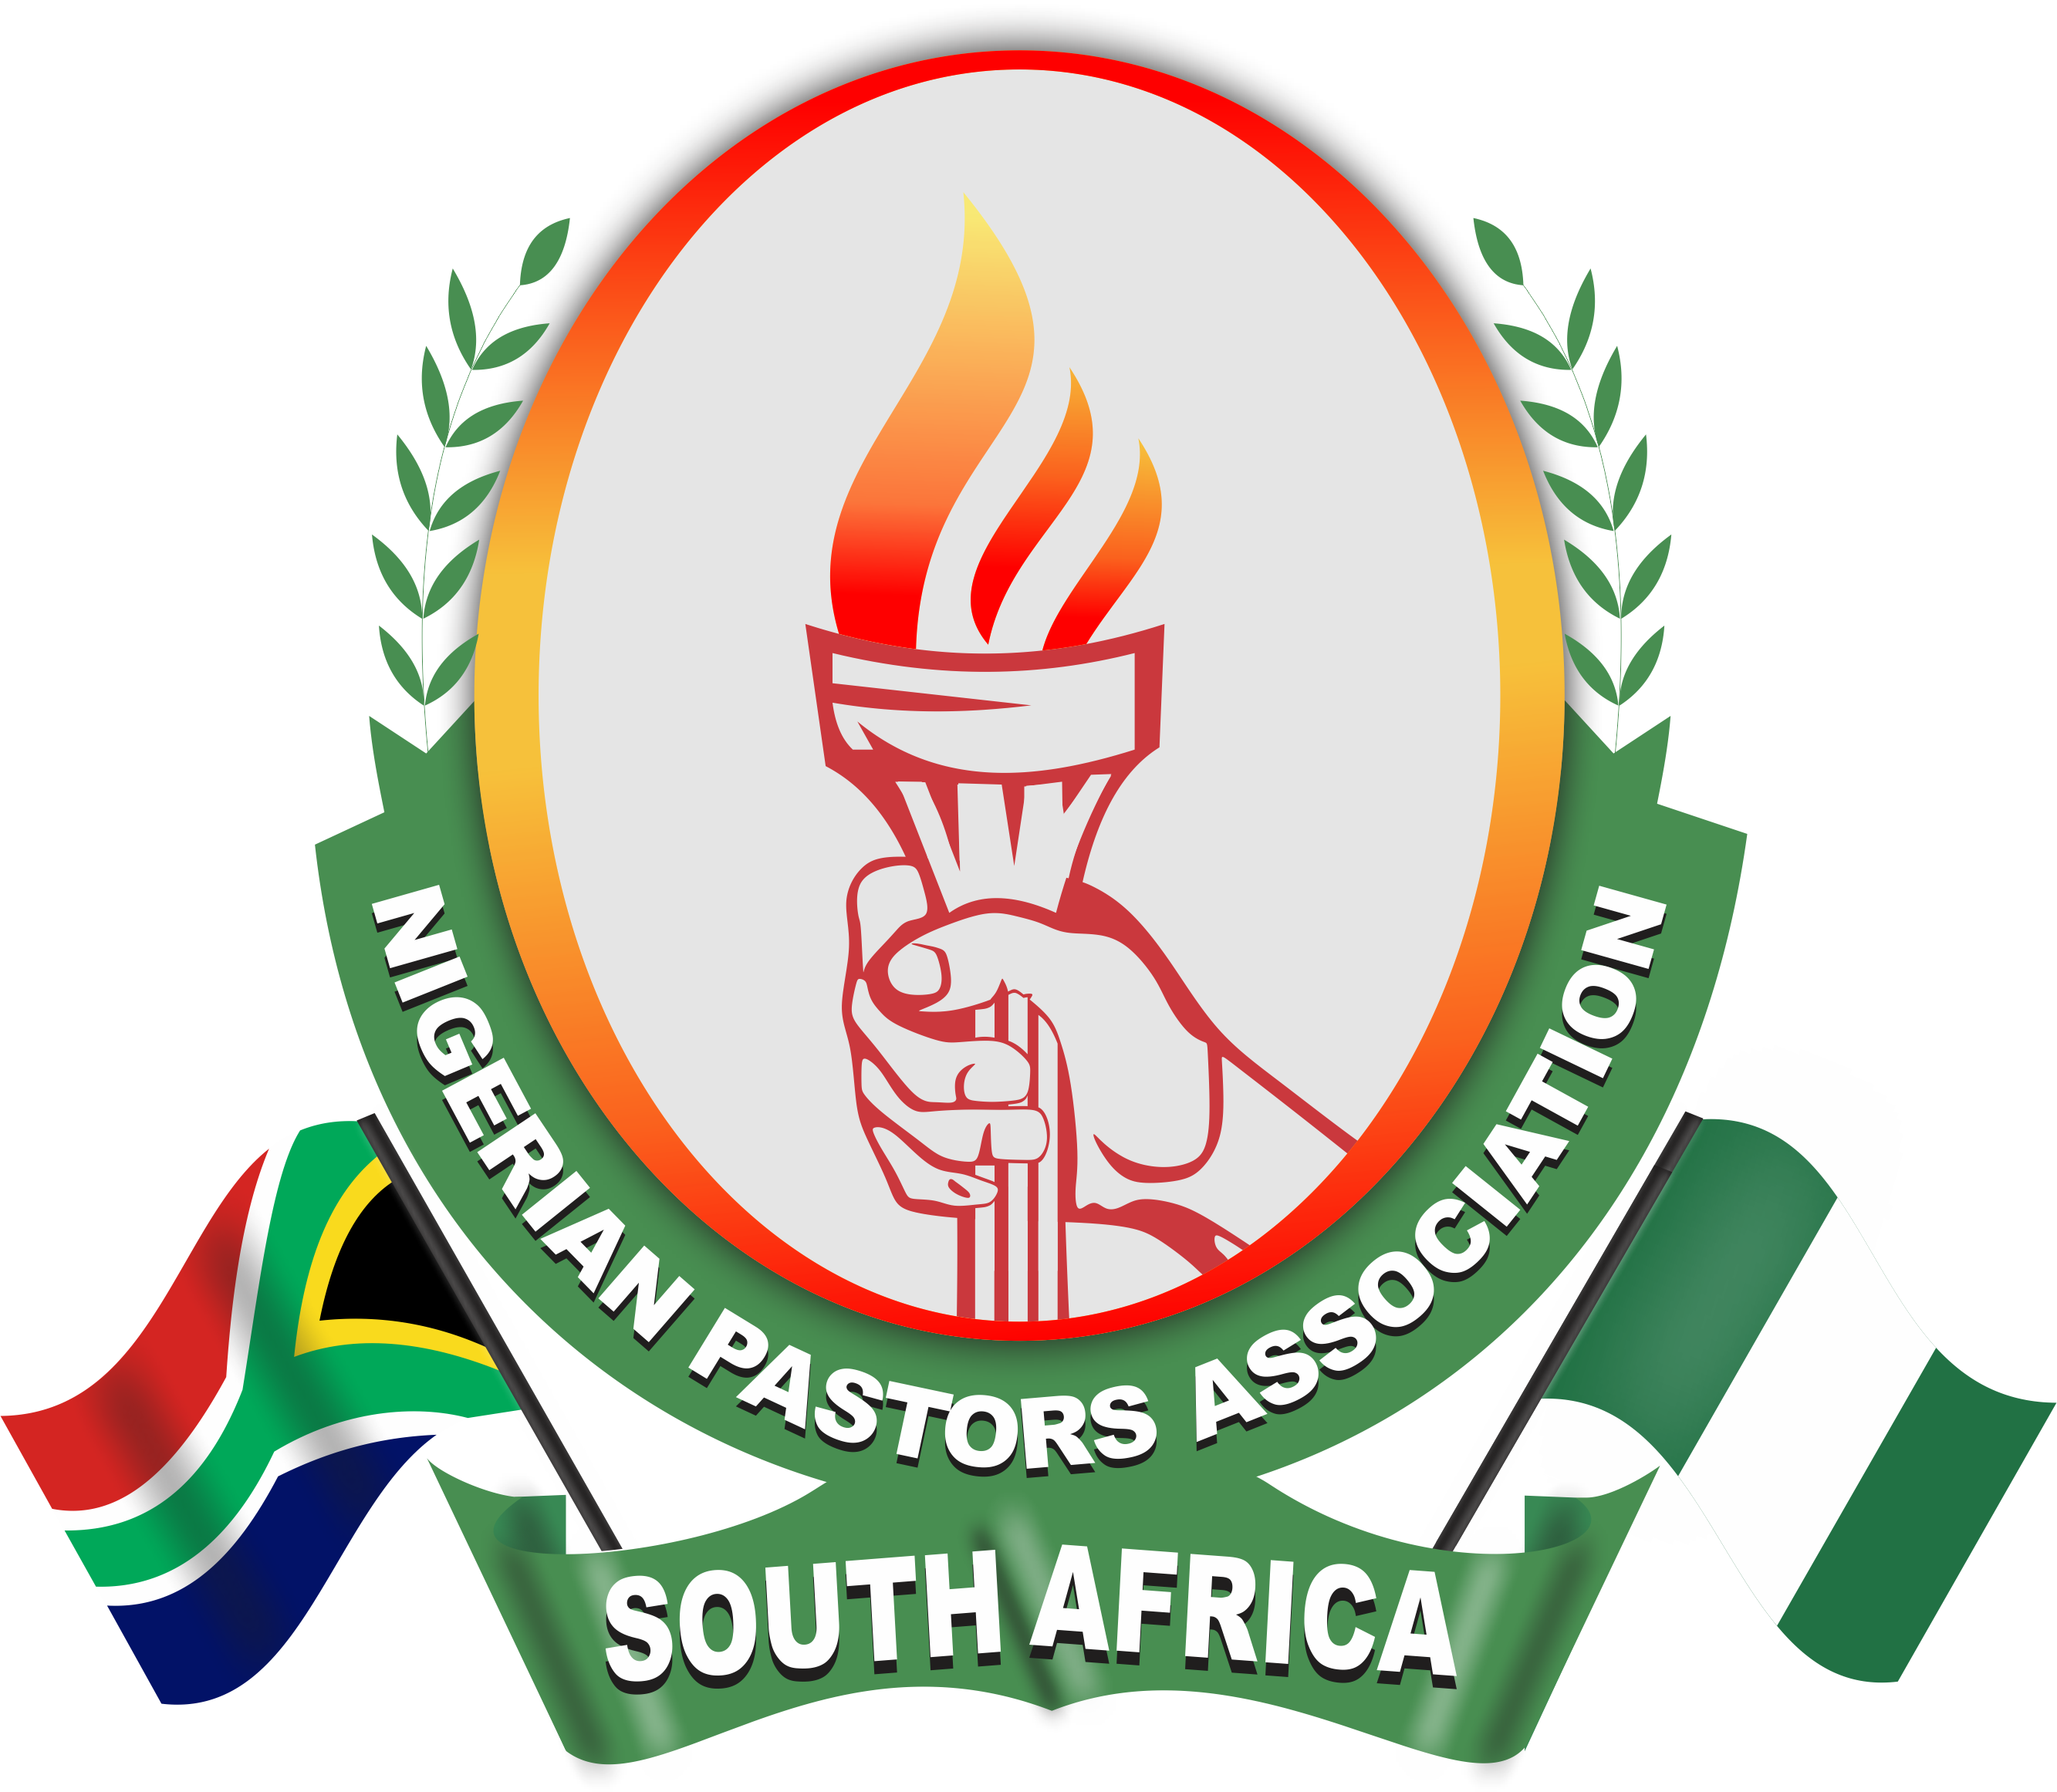 About – NIGERIAN PASTORS ASSOCIATION SOUTH AFRICA (NPASA)